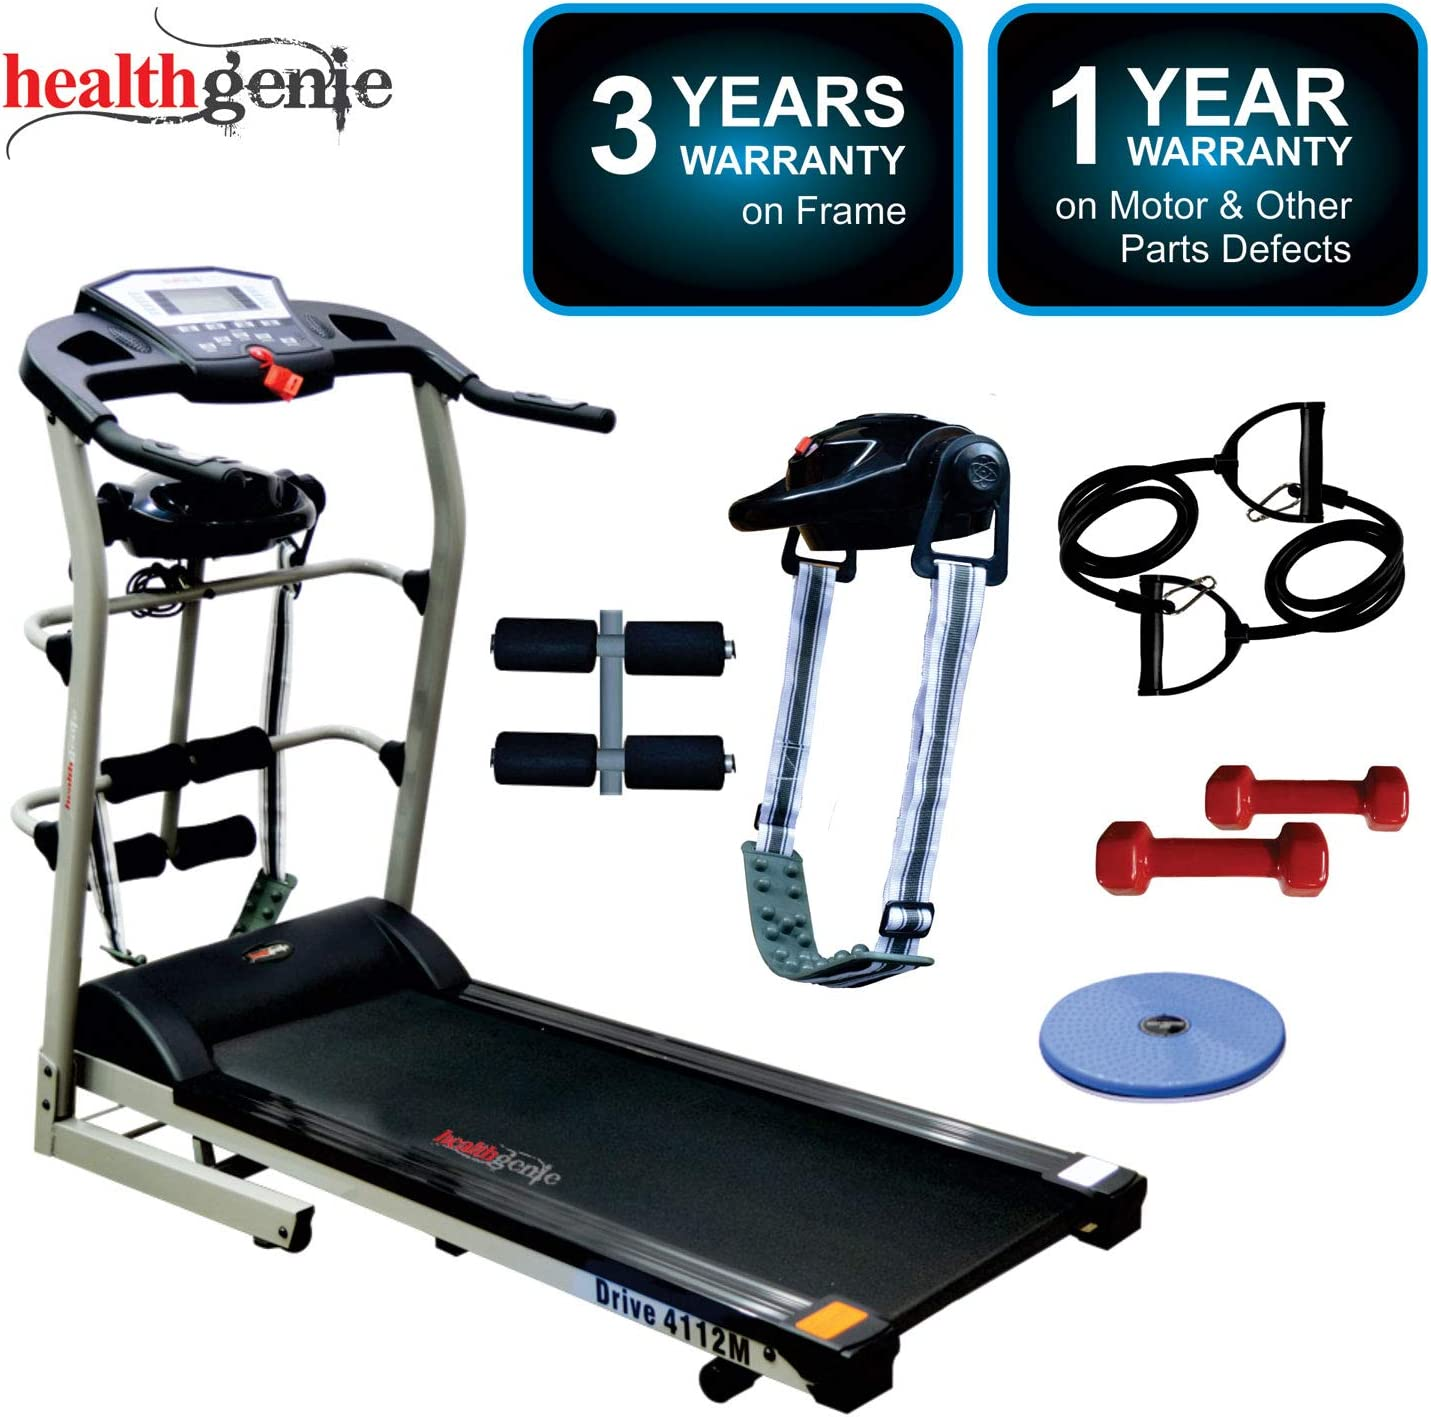 Healthgenie 4112M, 6in1 Motorized Treadmill